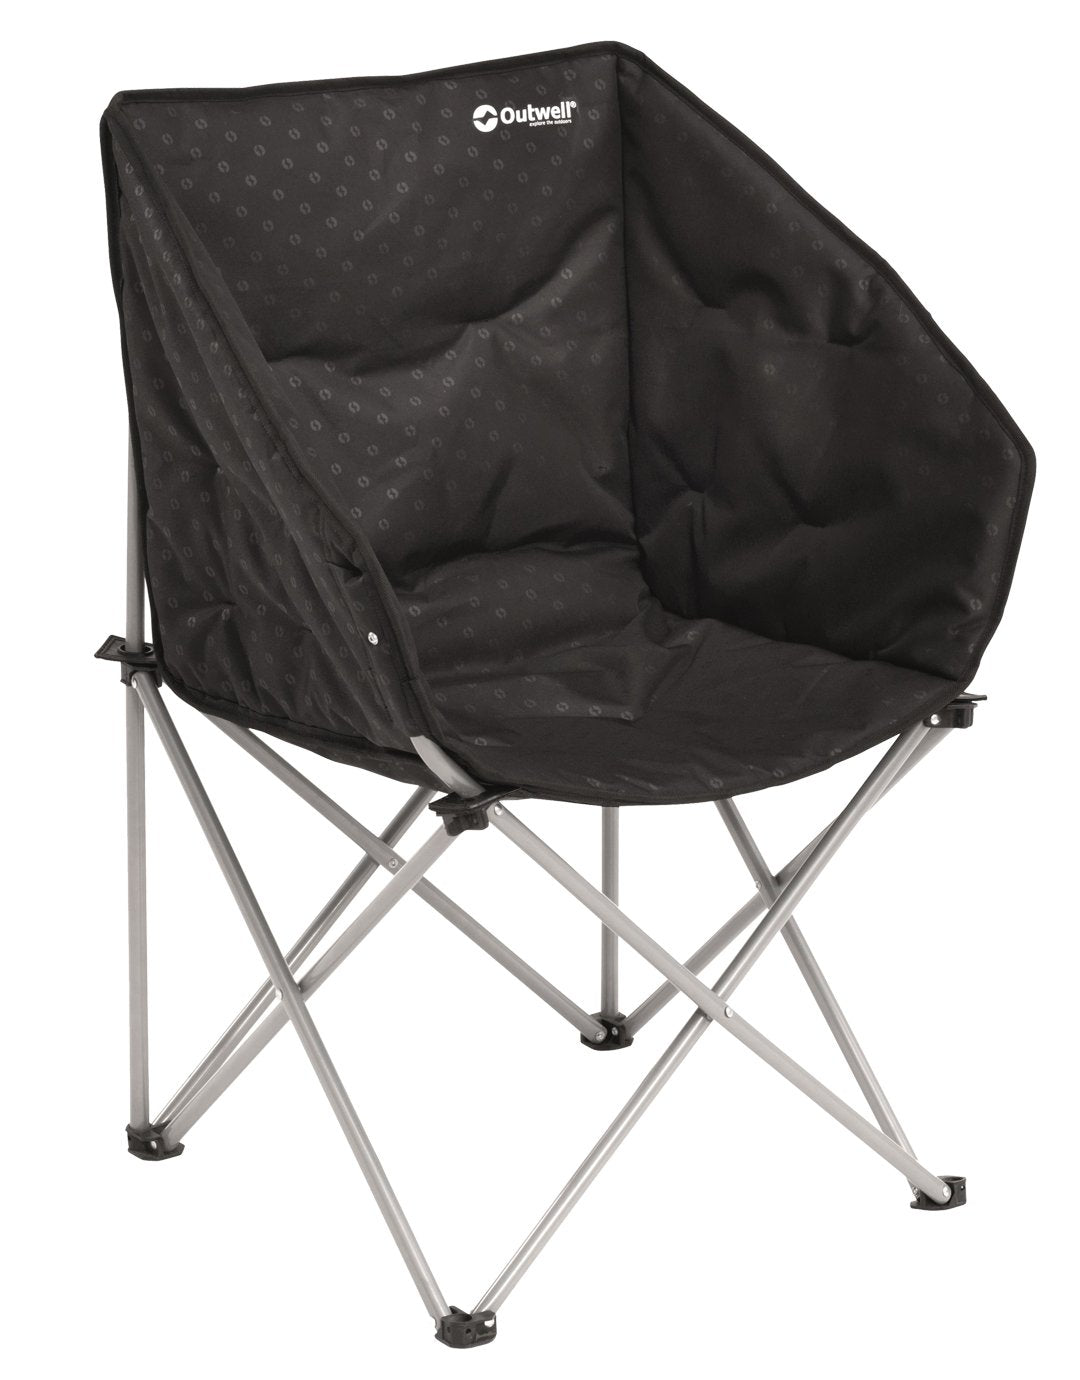 Outwell Angela Camping Chair